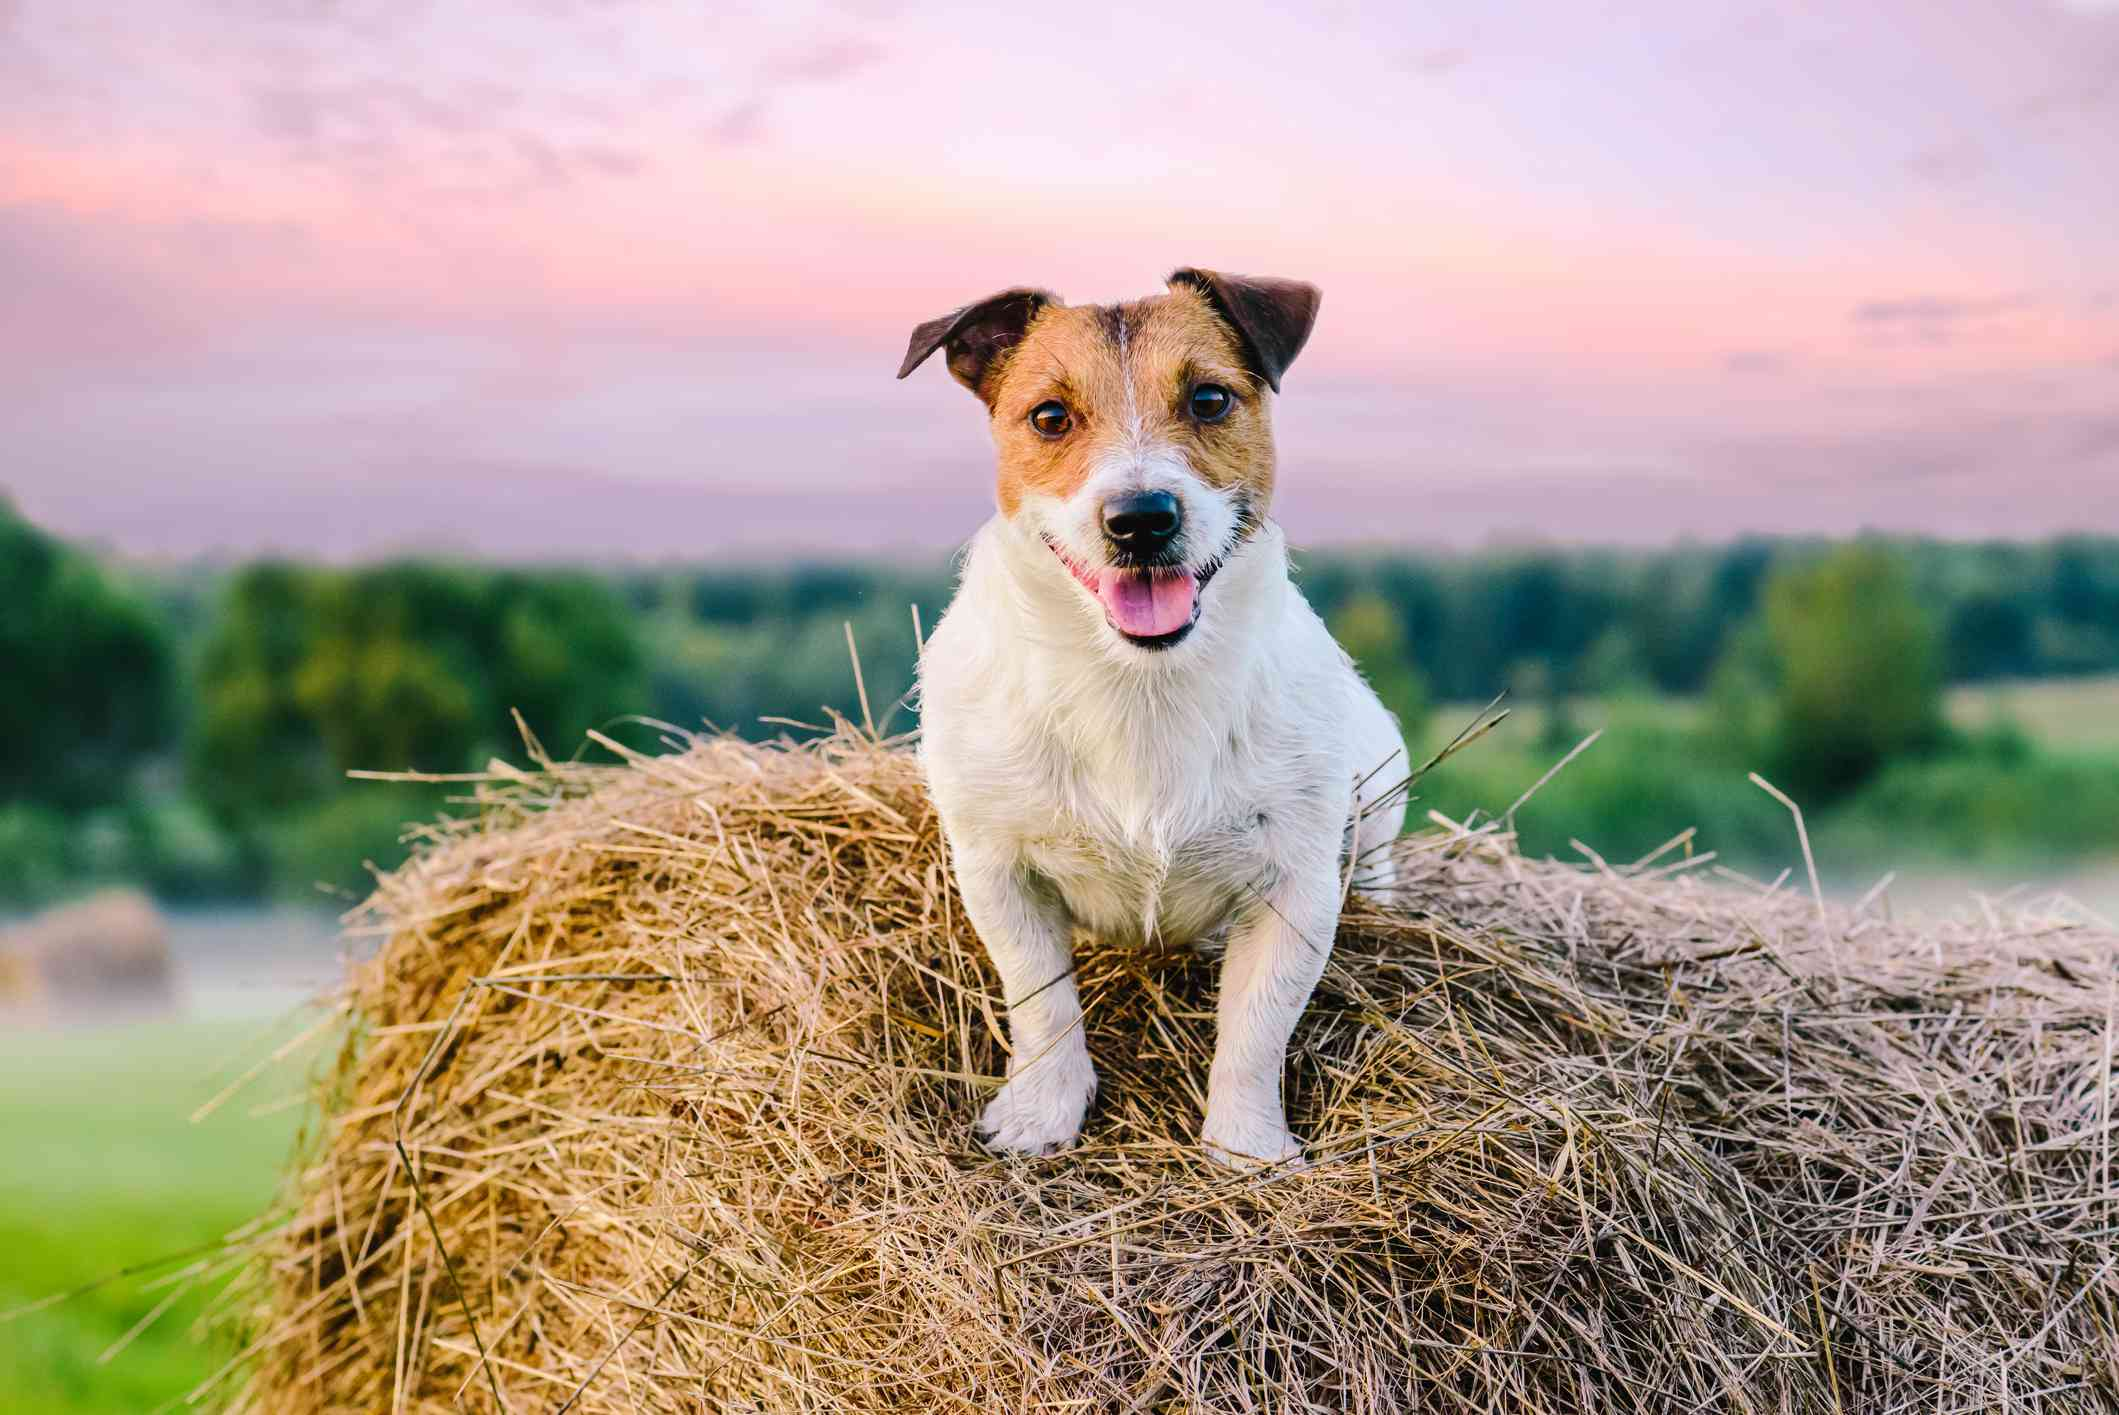 Jack Russell terrier on a hay bale